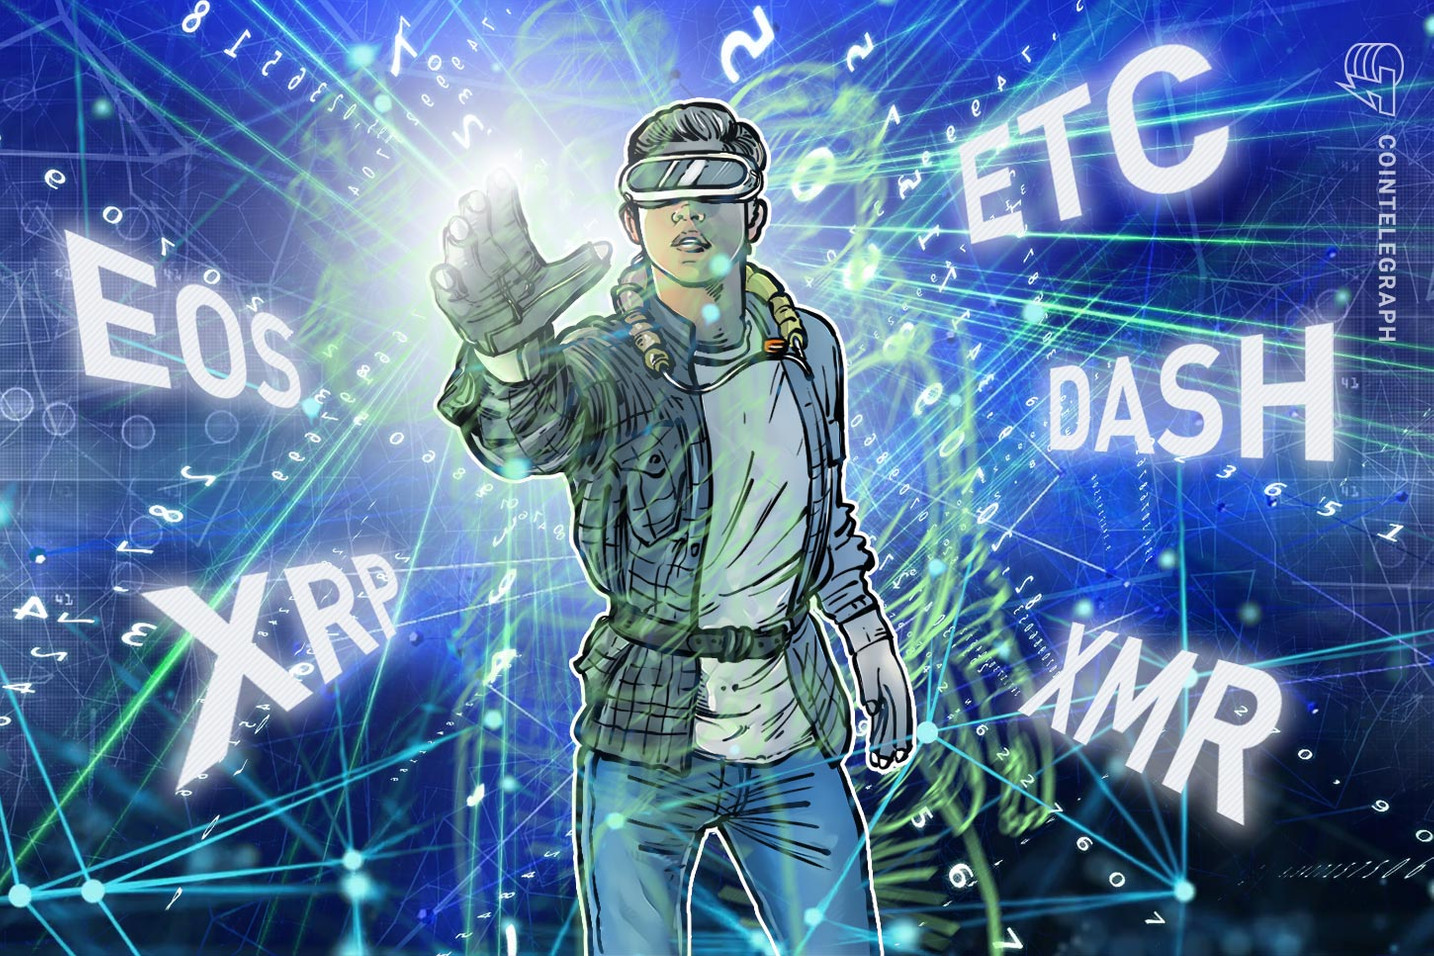 Top 5 Crypto Performers Overview: EOS, Ripple, Ethereum Classic, Dash, Monero